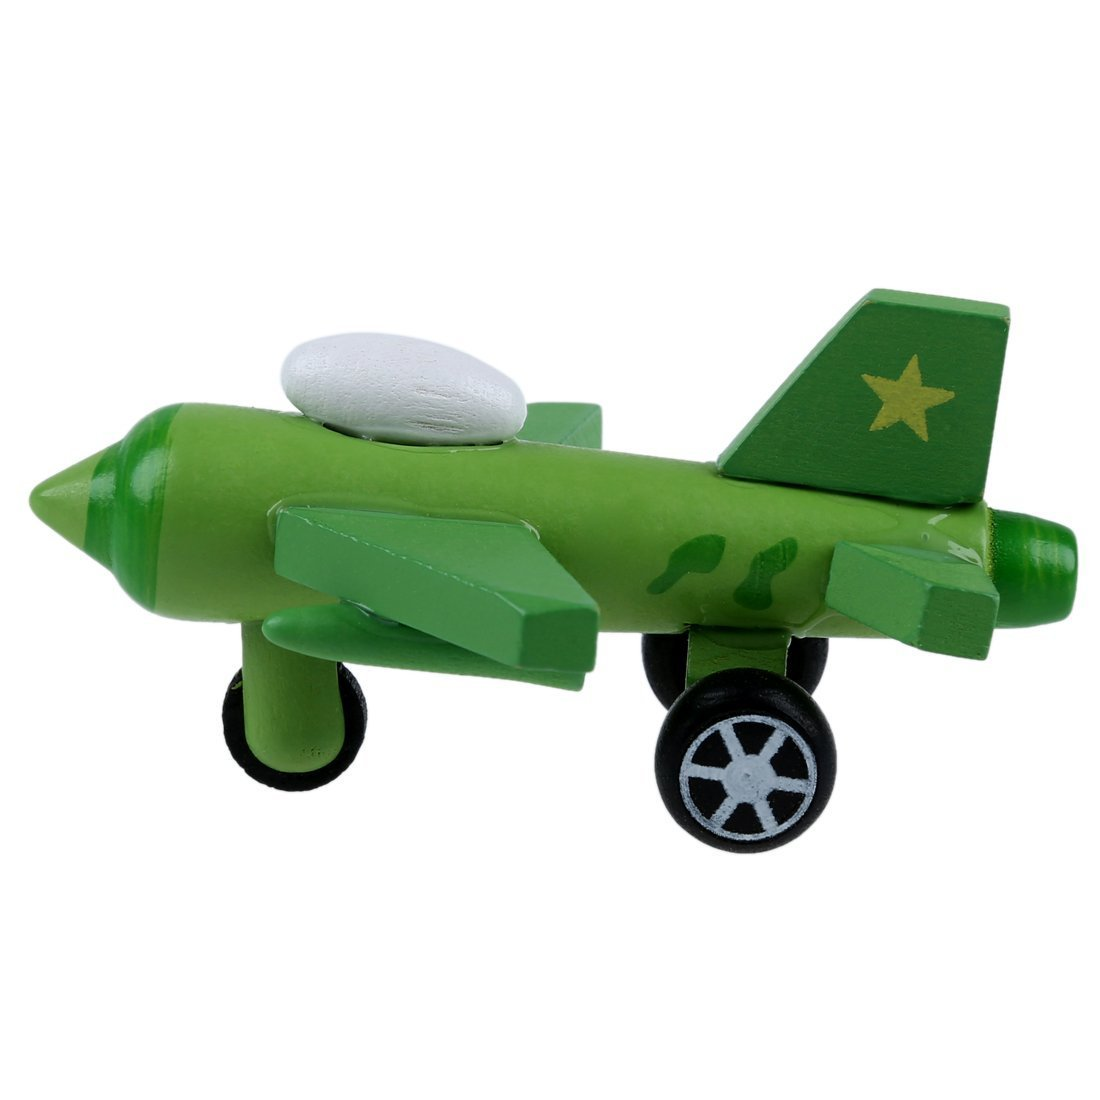 SODIAL R Set of 12 Wooden Airplane Model Educational Toys